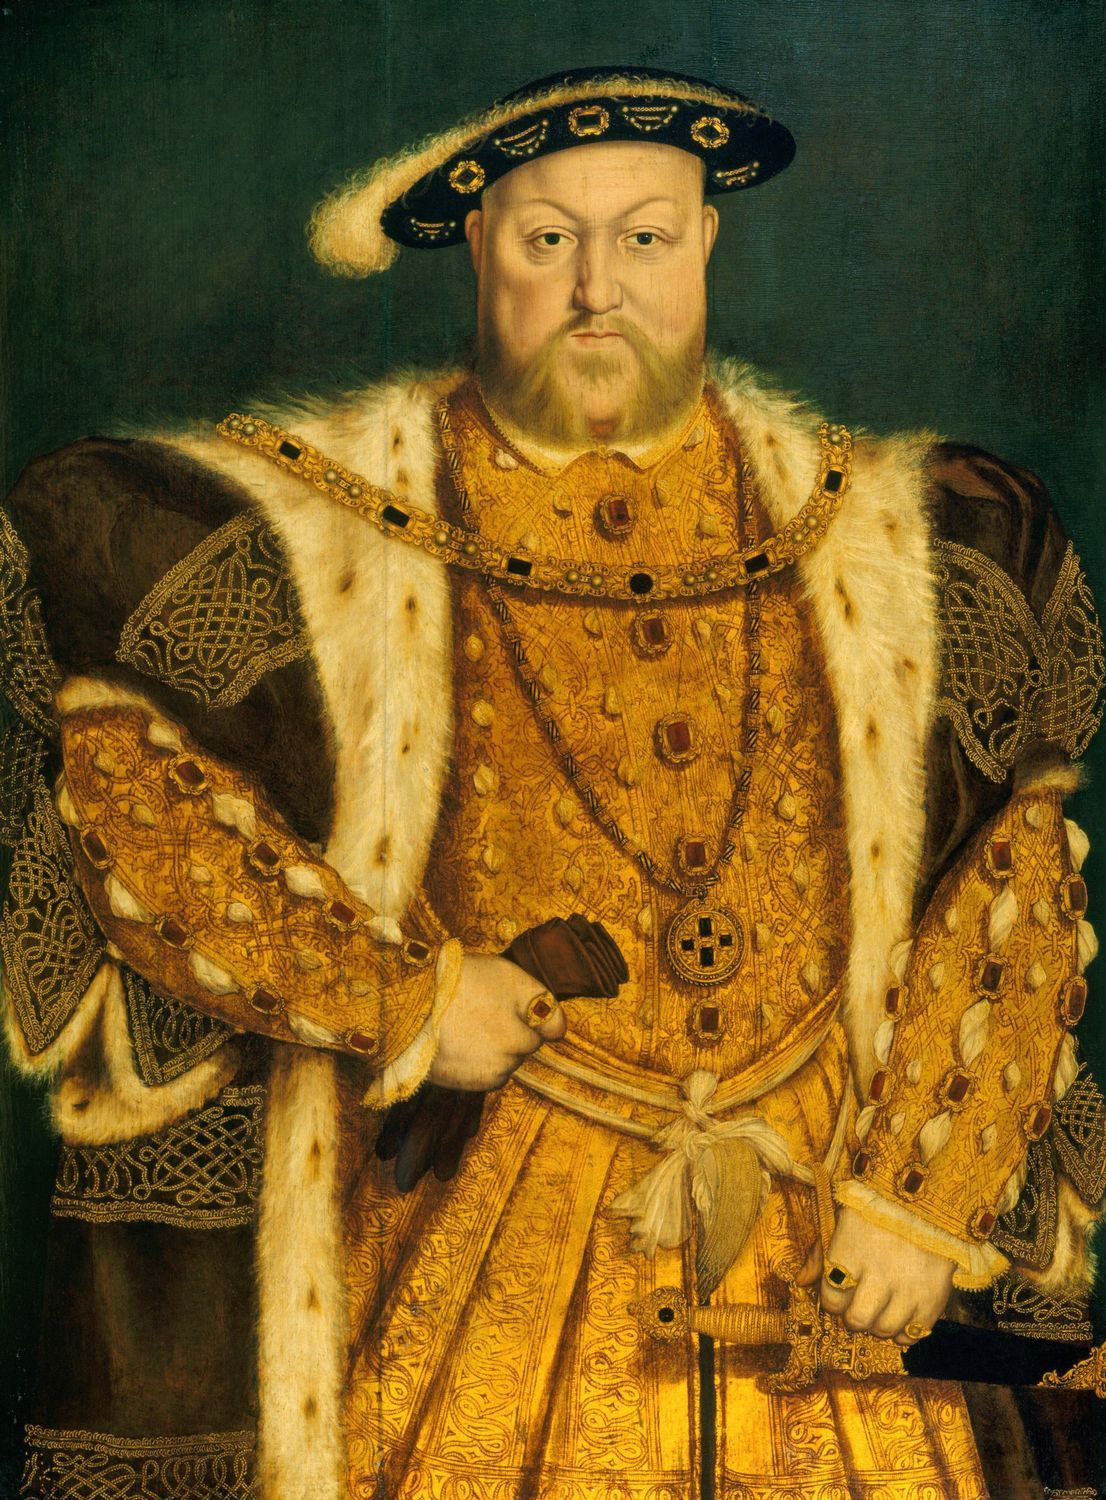 Portrait of Henry VIII (1491-1547). c.1538-1547 (Royal Collection of the United Kingdom)